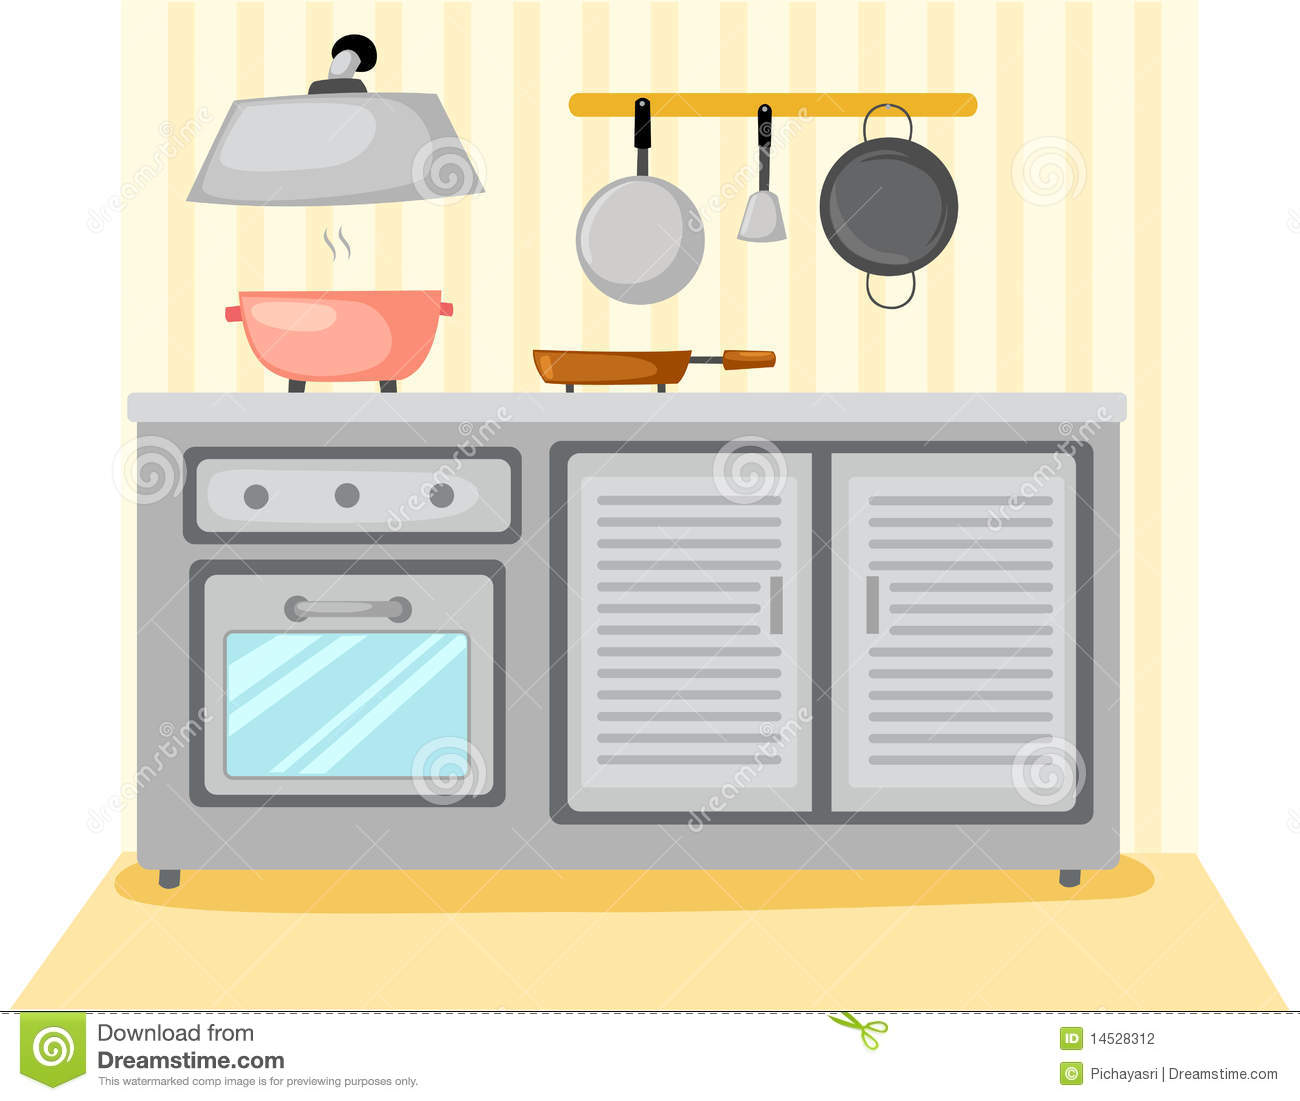 Cartoon kitchen counter gallery - Filename Kitchen Room 14528312 Jpg View Image